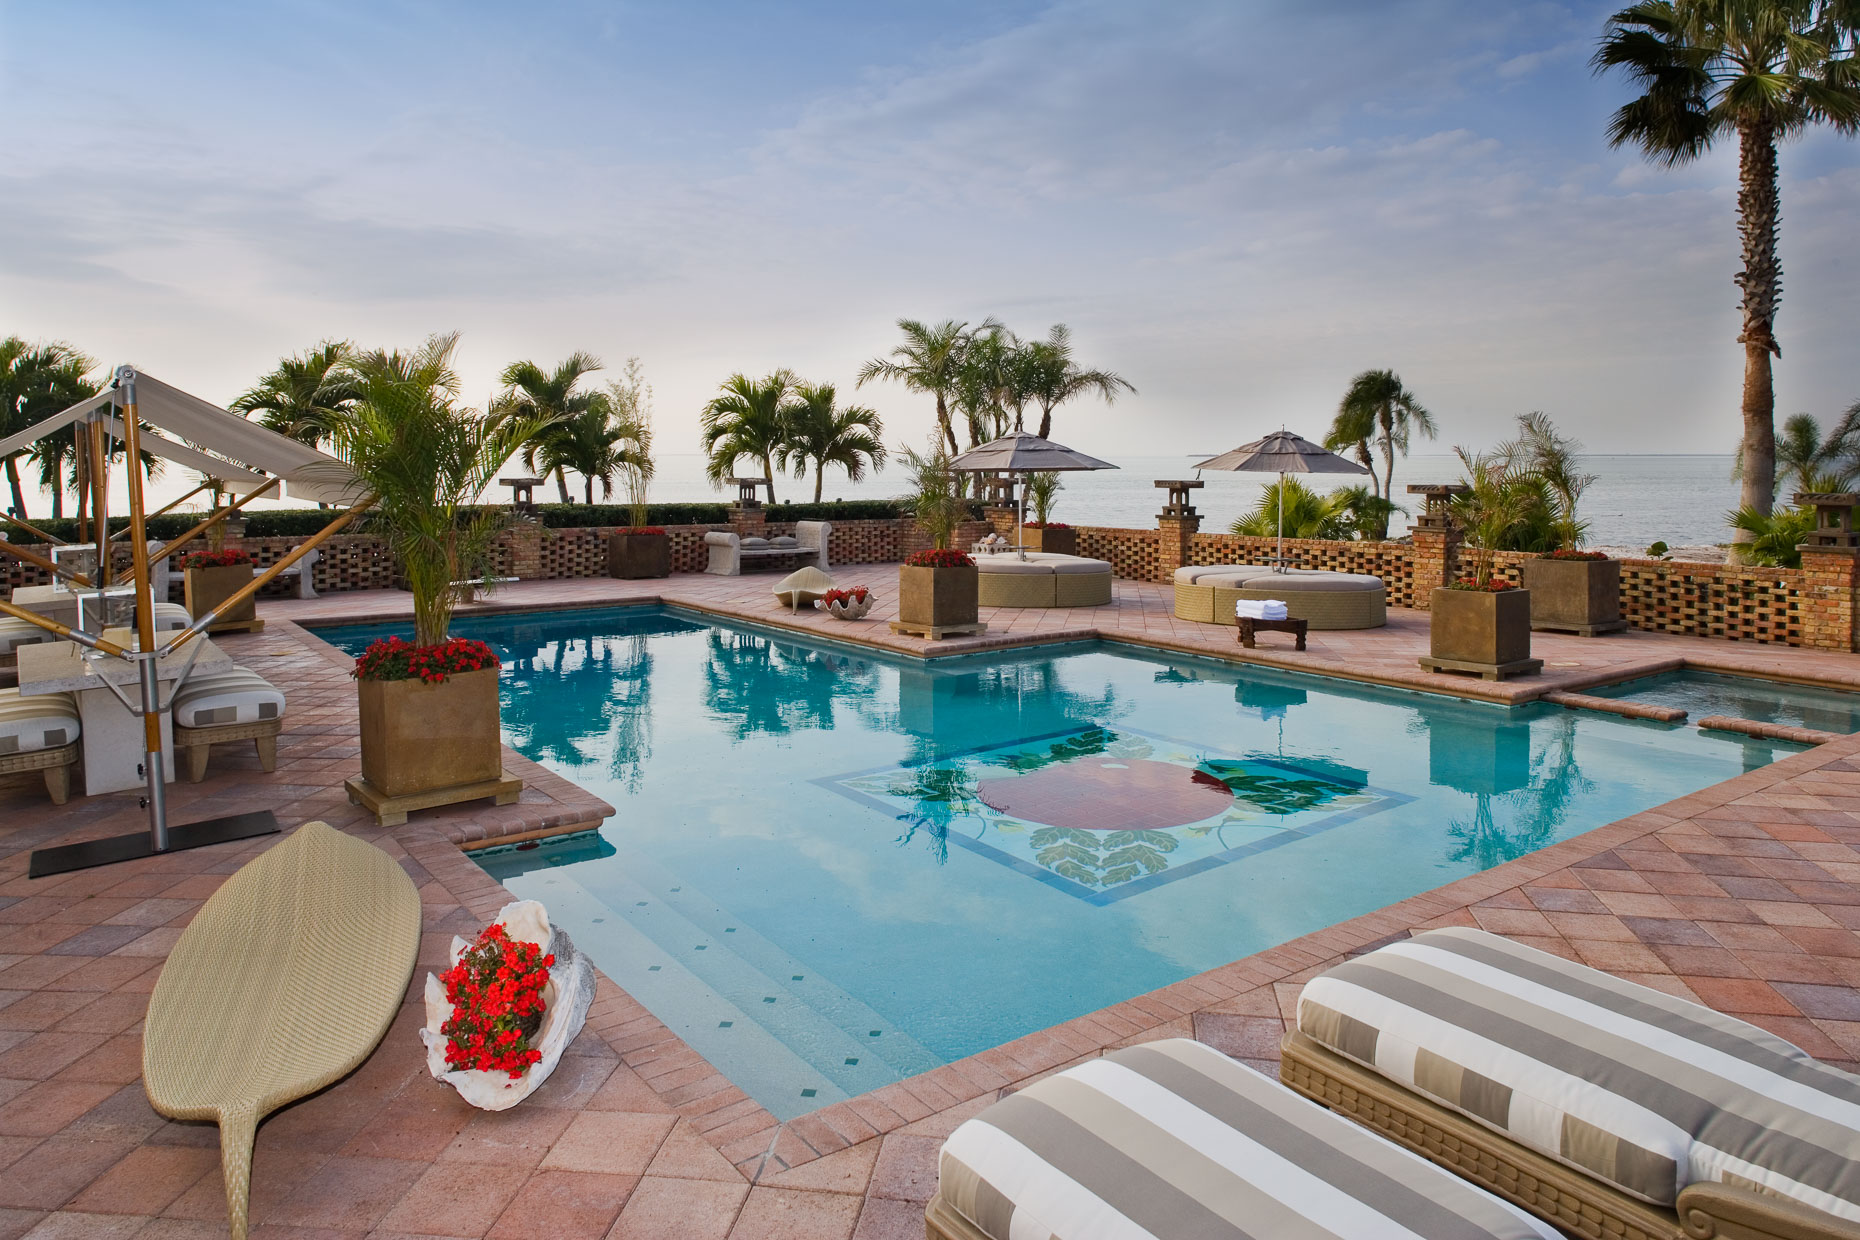 Resort Pool - Mark Borosch Photography - Apollo Beach, FL